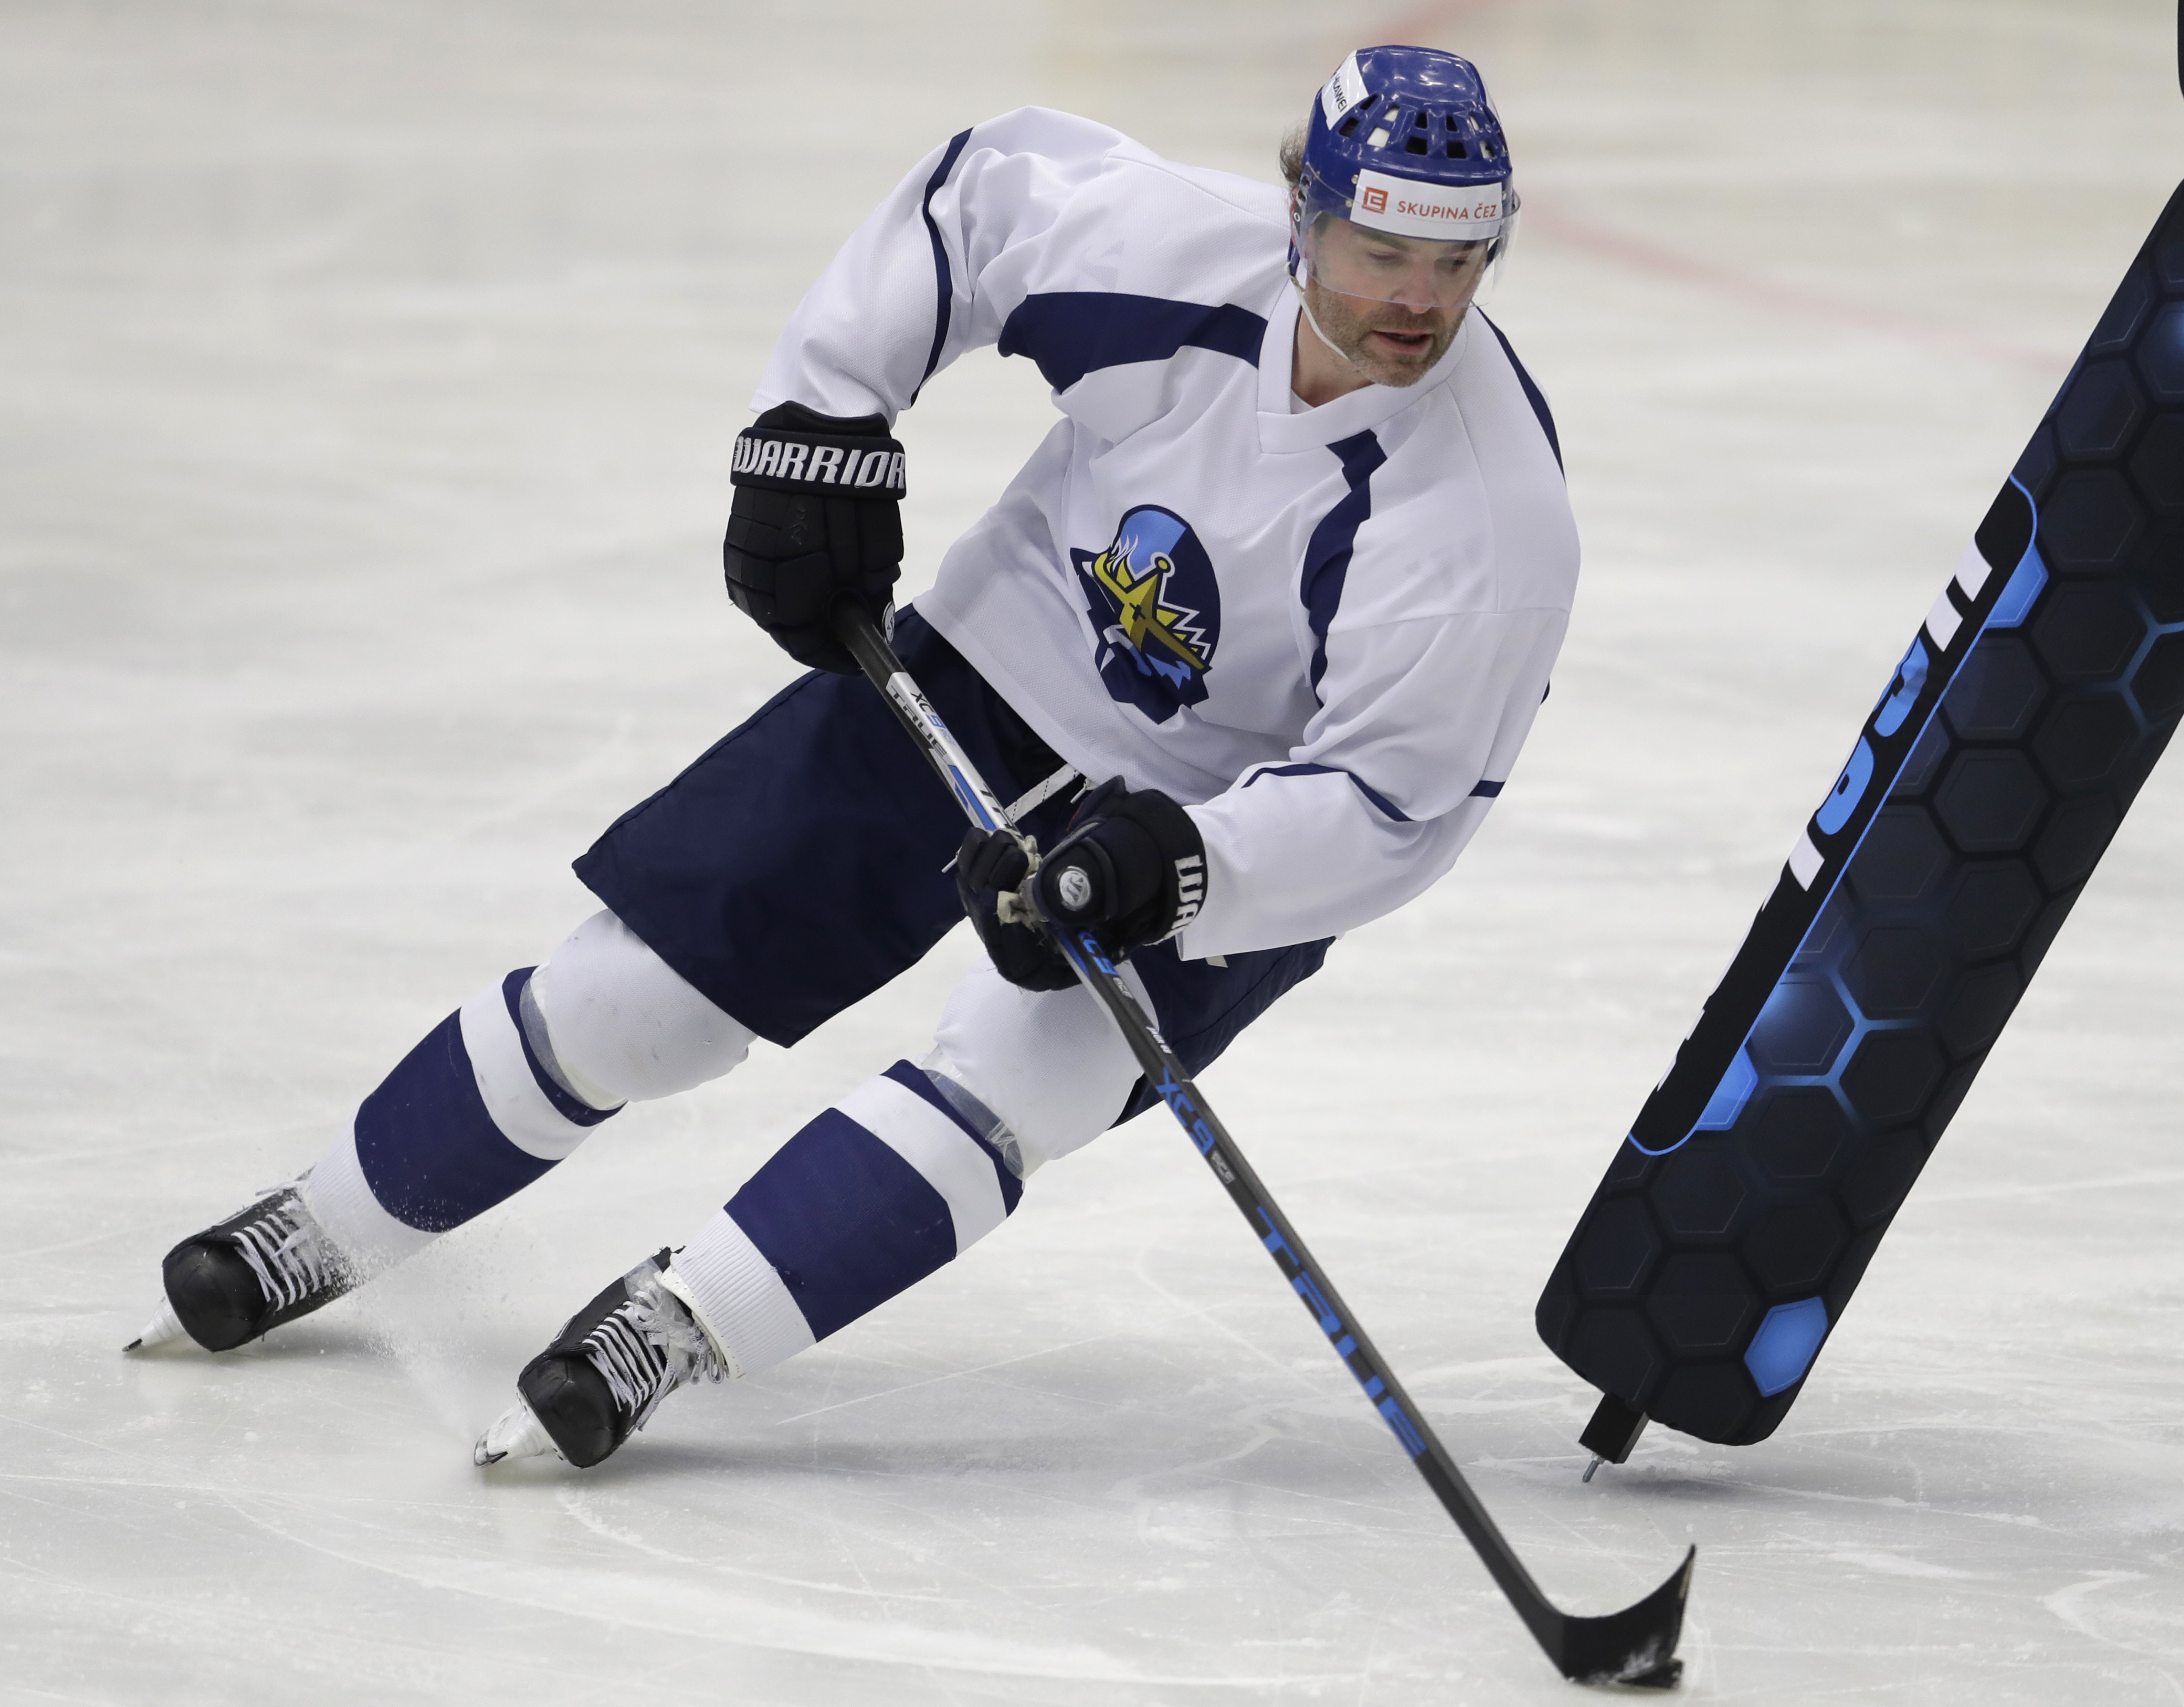 Jaromir Jagr is still playing in the Czech Republic at the age of 50.